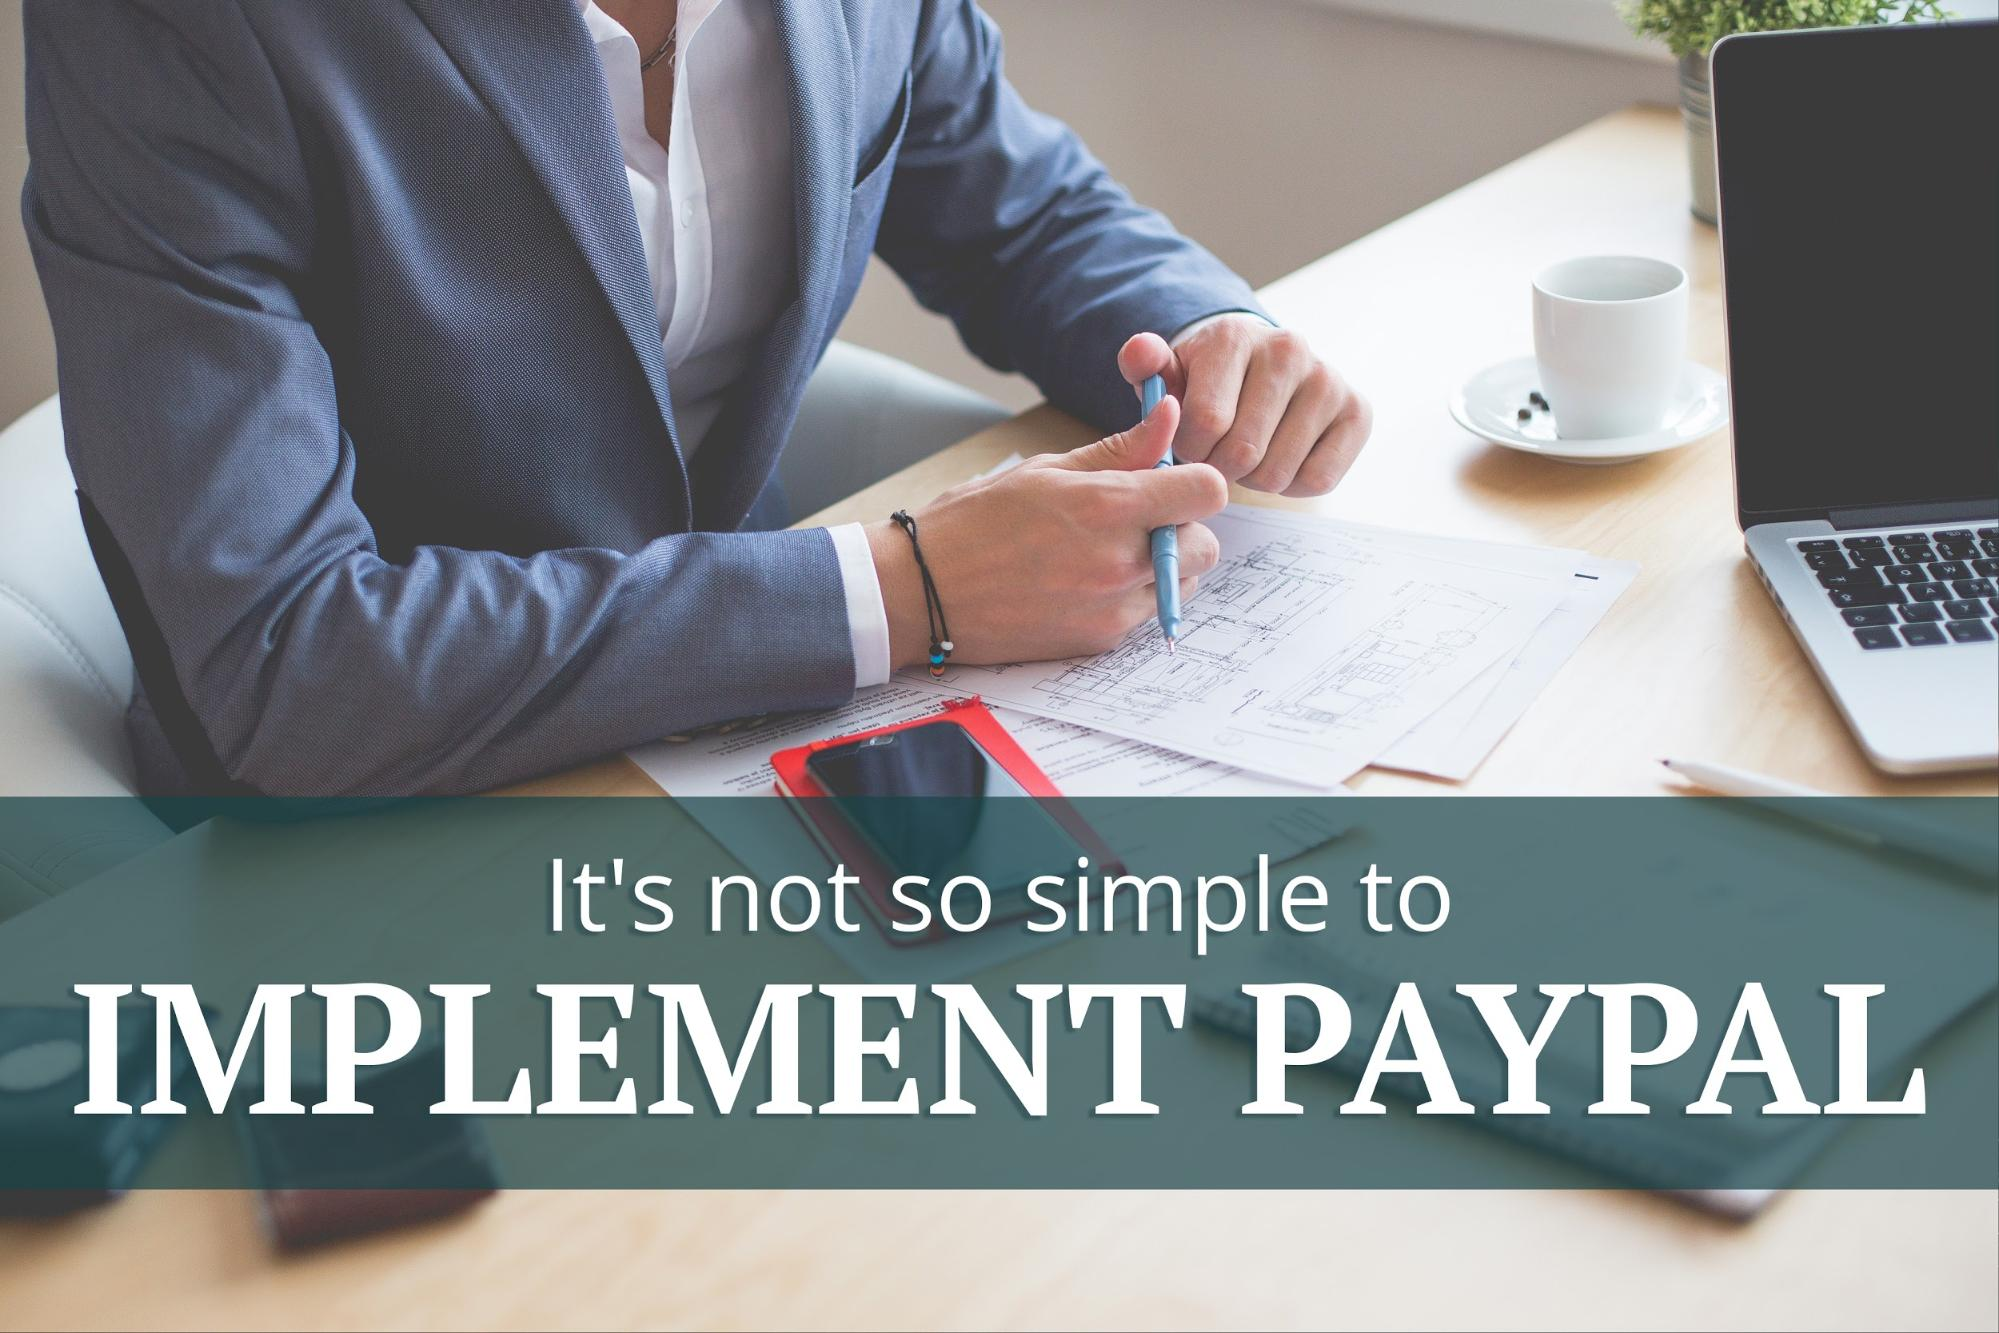 Expert Drupal developers can find it challenging to implement recurring PayPal payments.